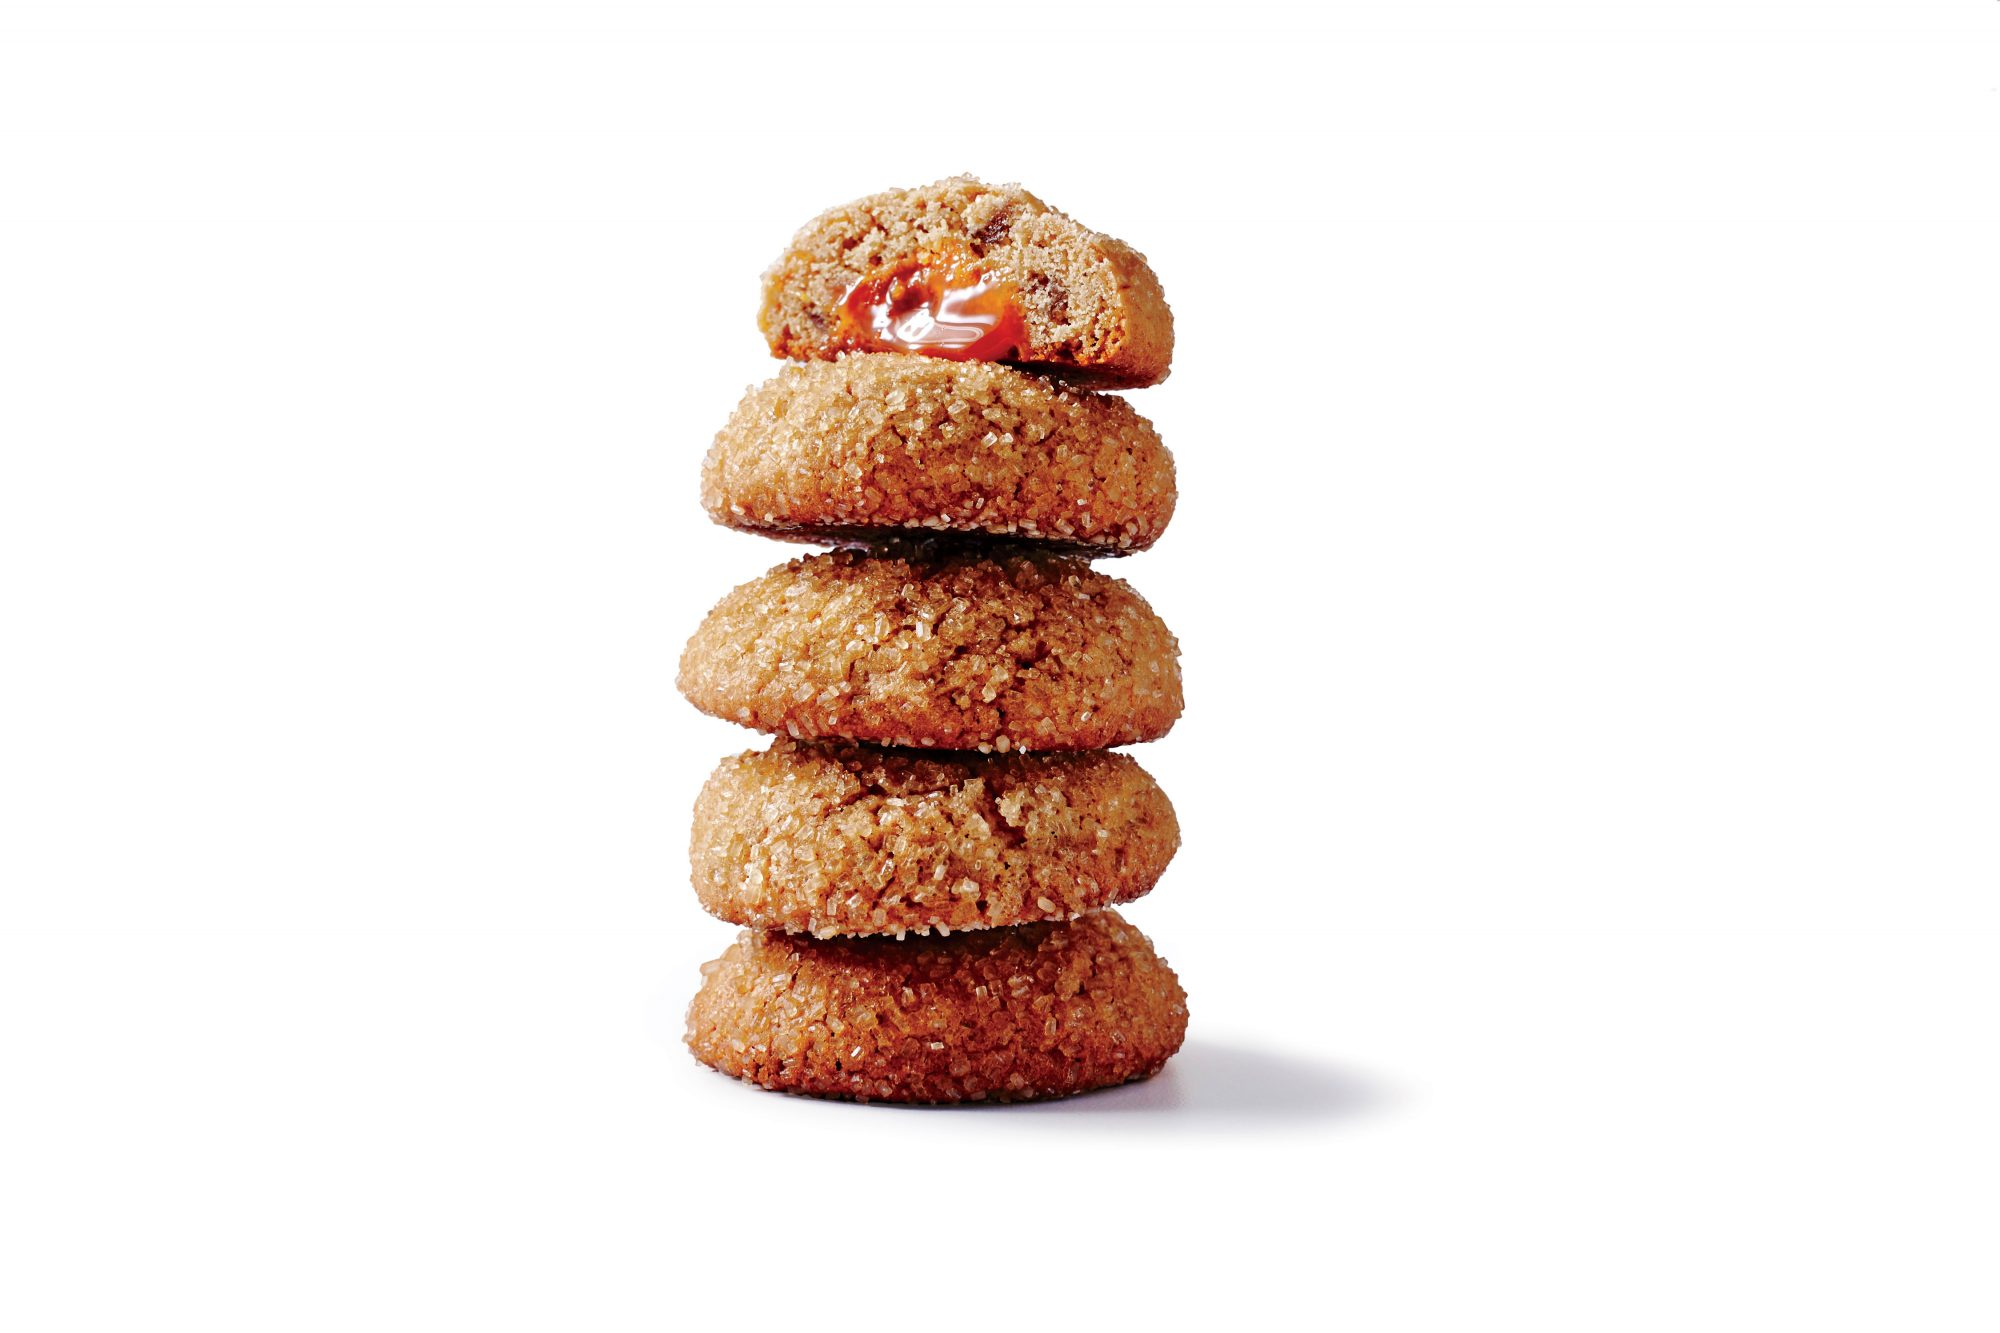 Caramel-Stuffed Ginger Cookies image